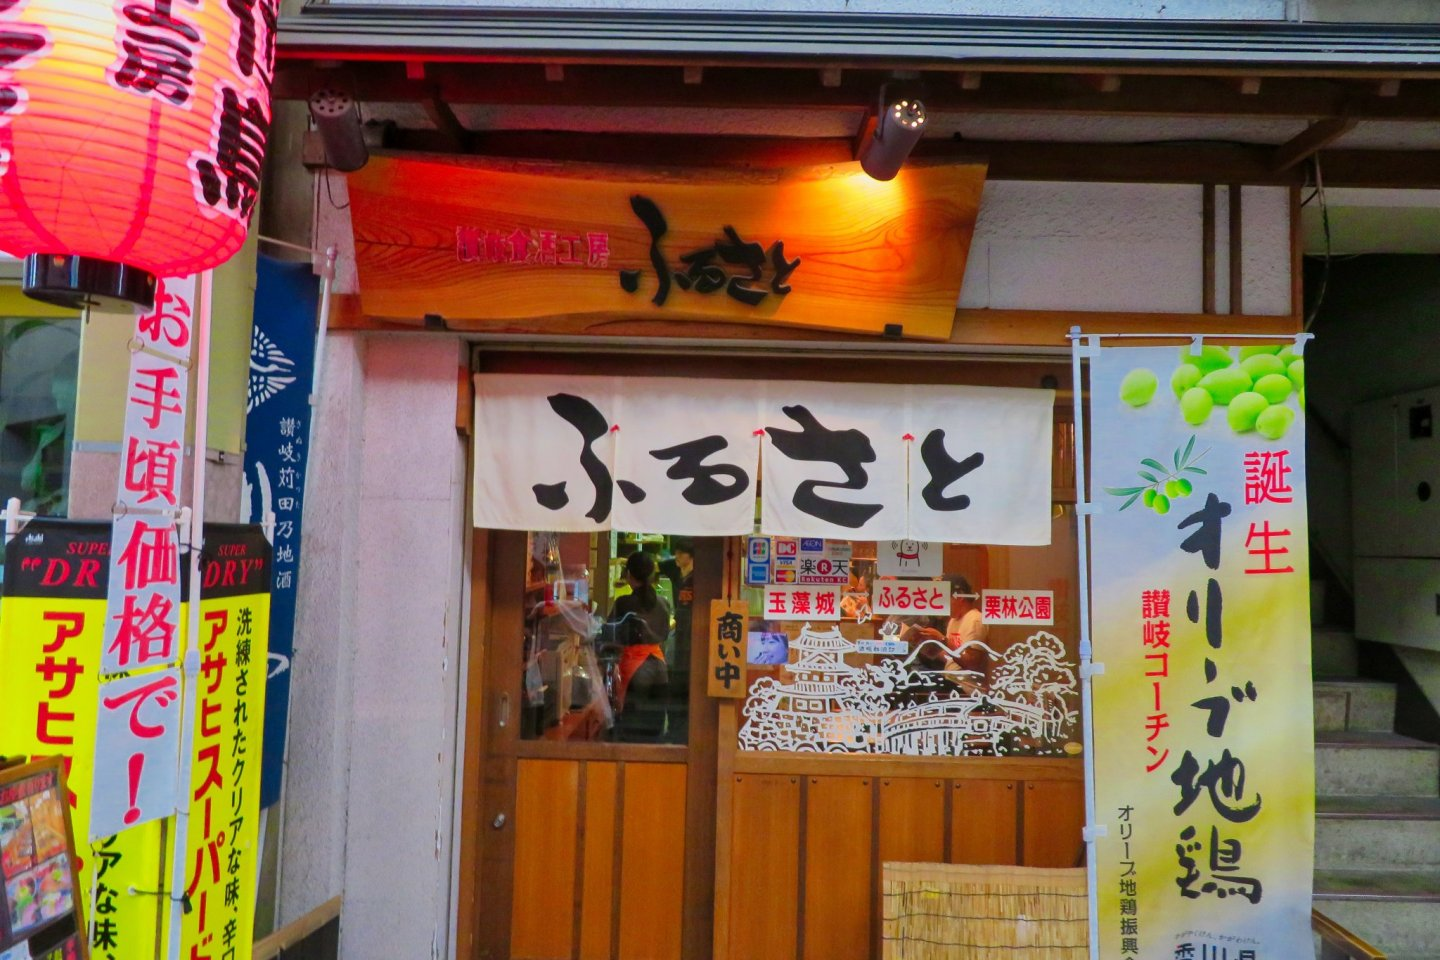 Entrance to Furusato Restaurant